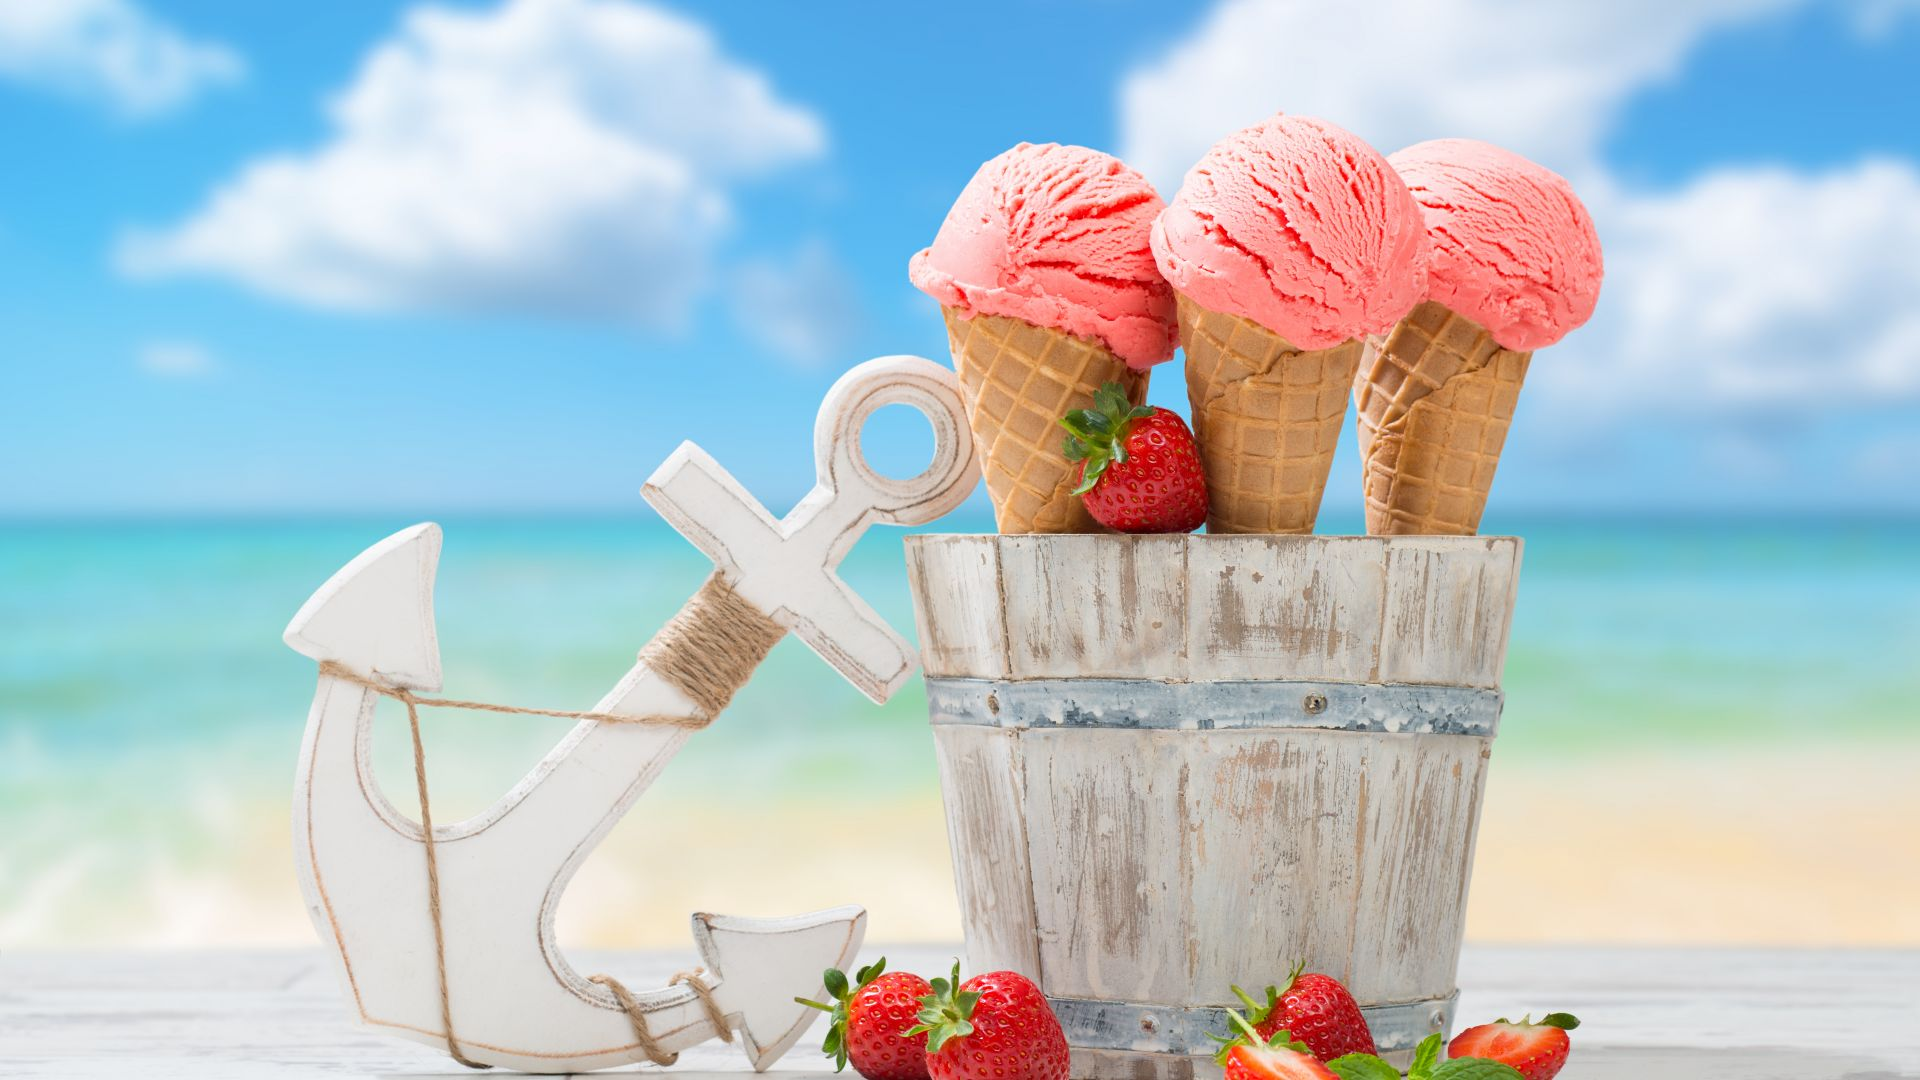 iphone photos to pc wallpaper strawberry anchor delicious 8k 15361